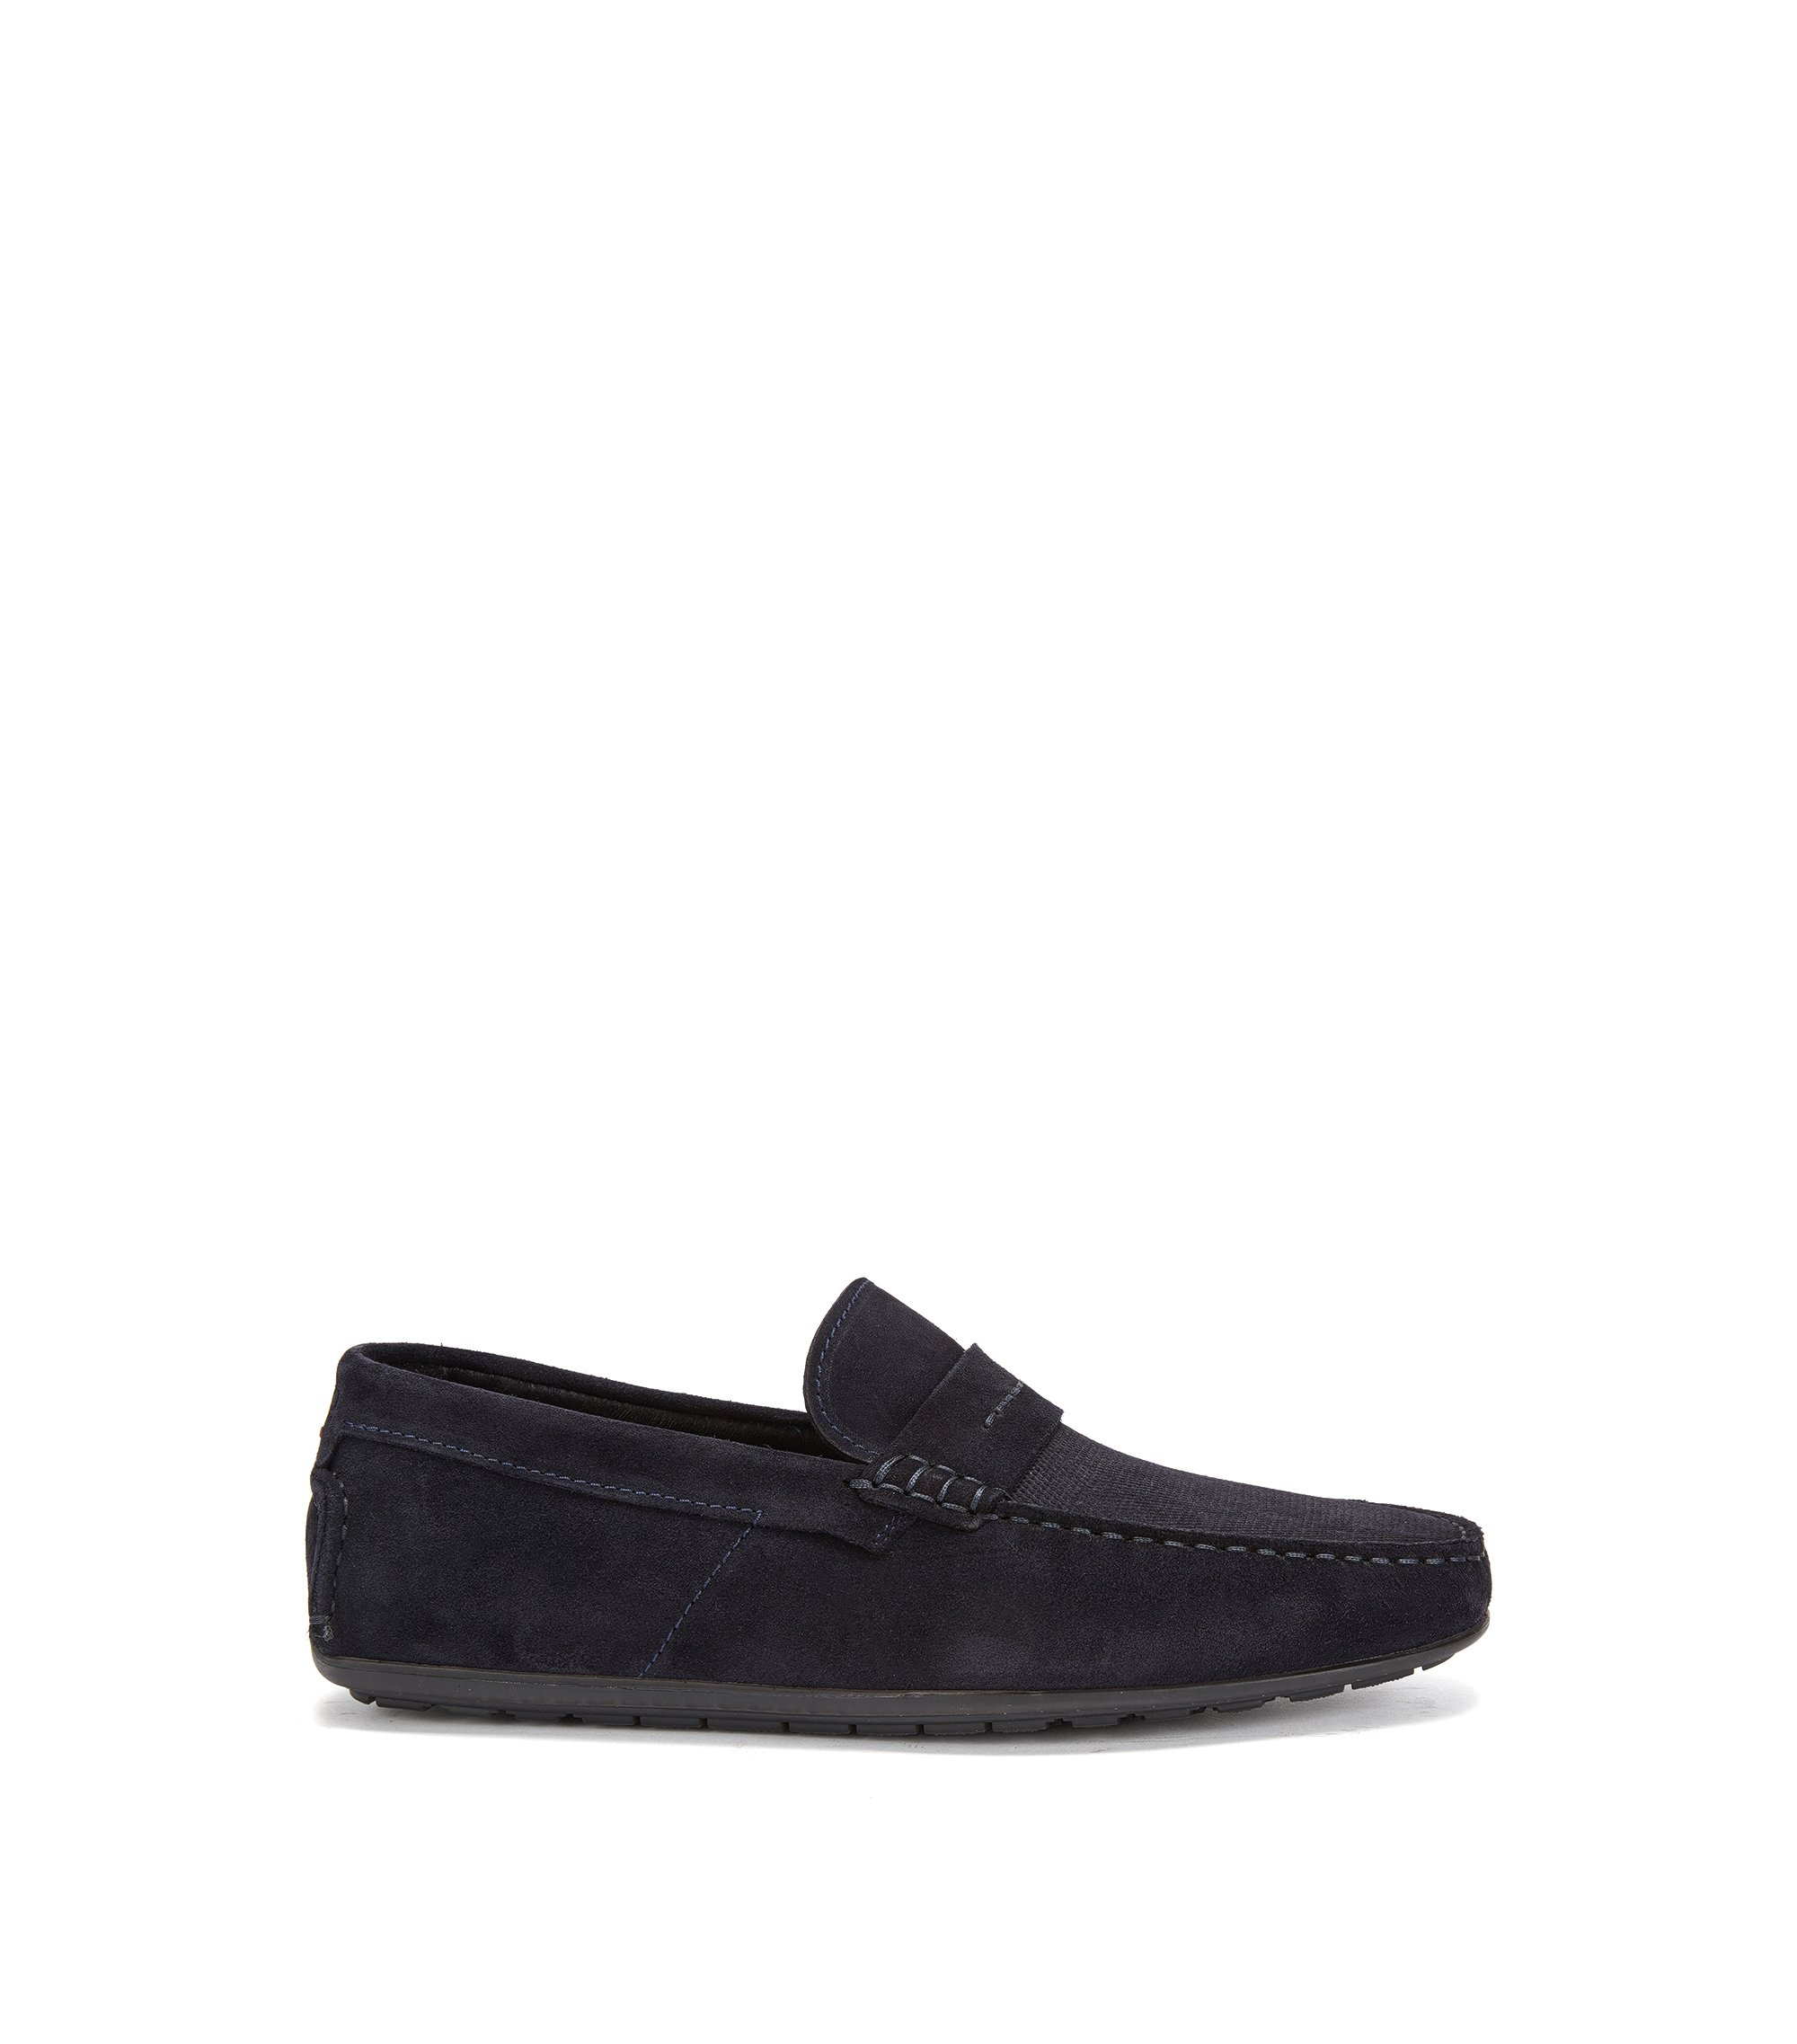 Suede Driving Loafer | Dandy Mocc Plpr, Dark Blue